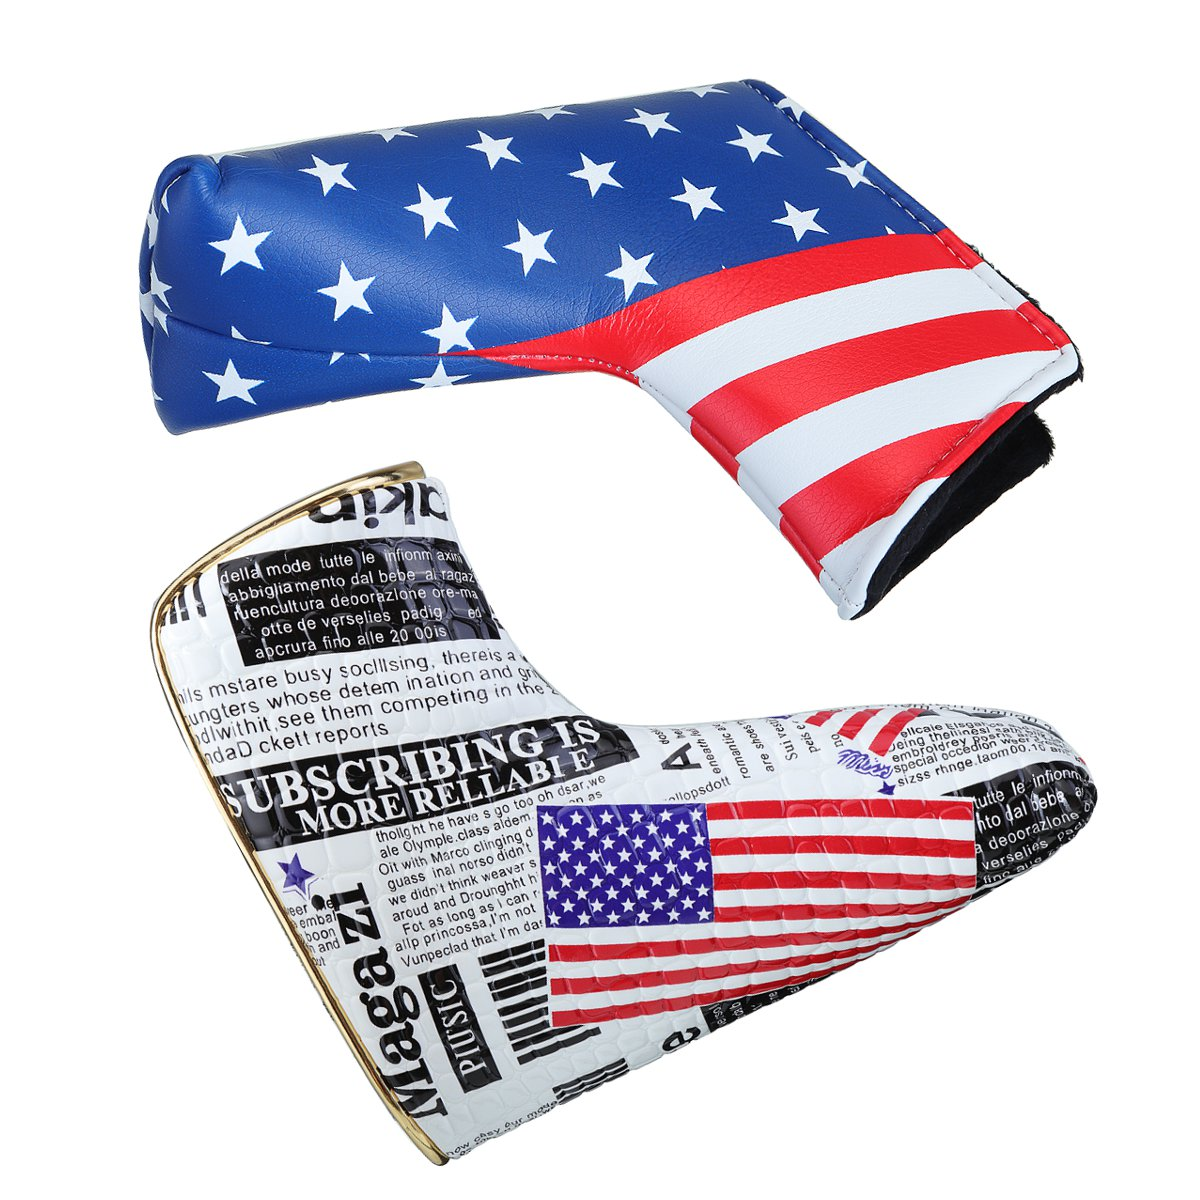 USA Flag Golf Blade Putter Head Cover PU Waterproof Headcover Protector Bag With Magnetic Closure Golf Club Head Accessories